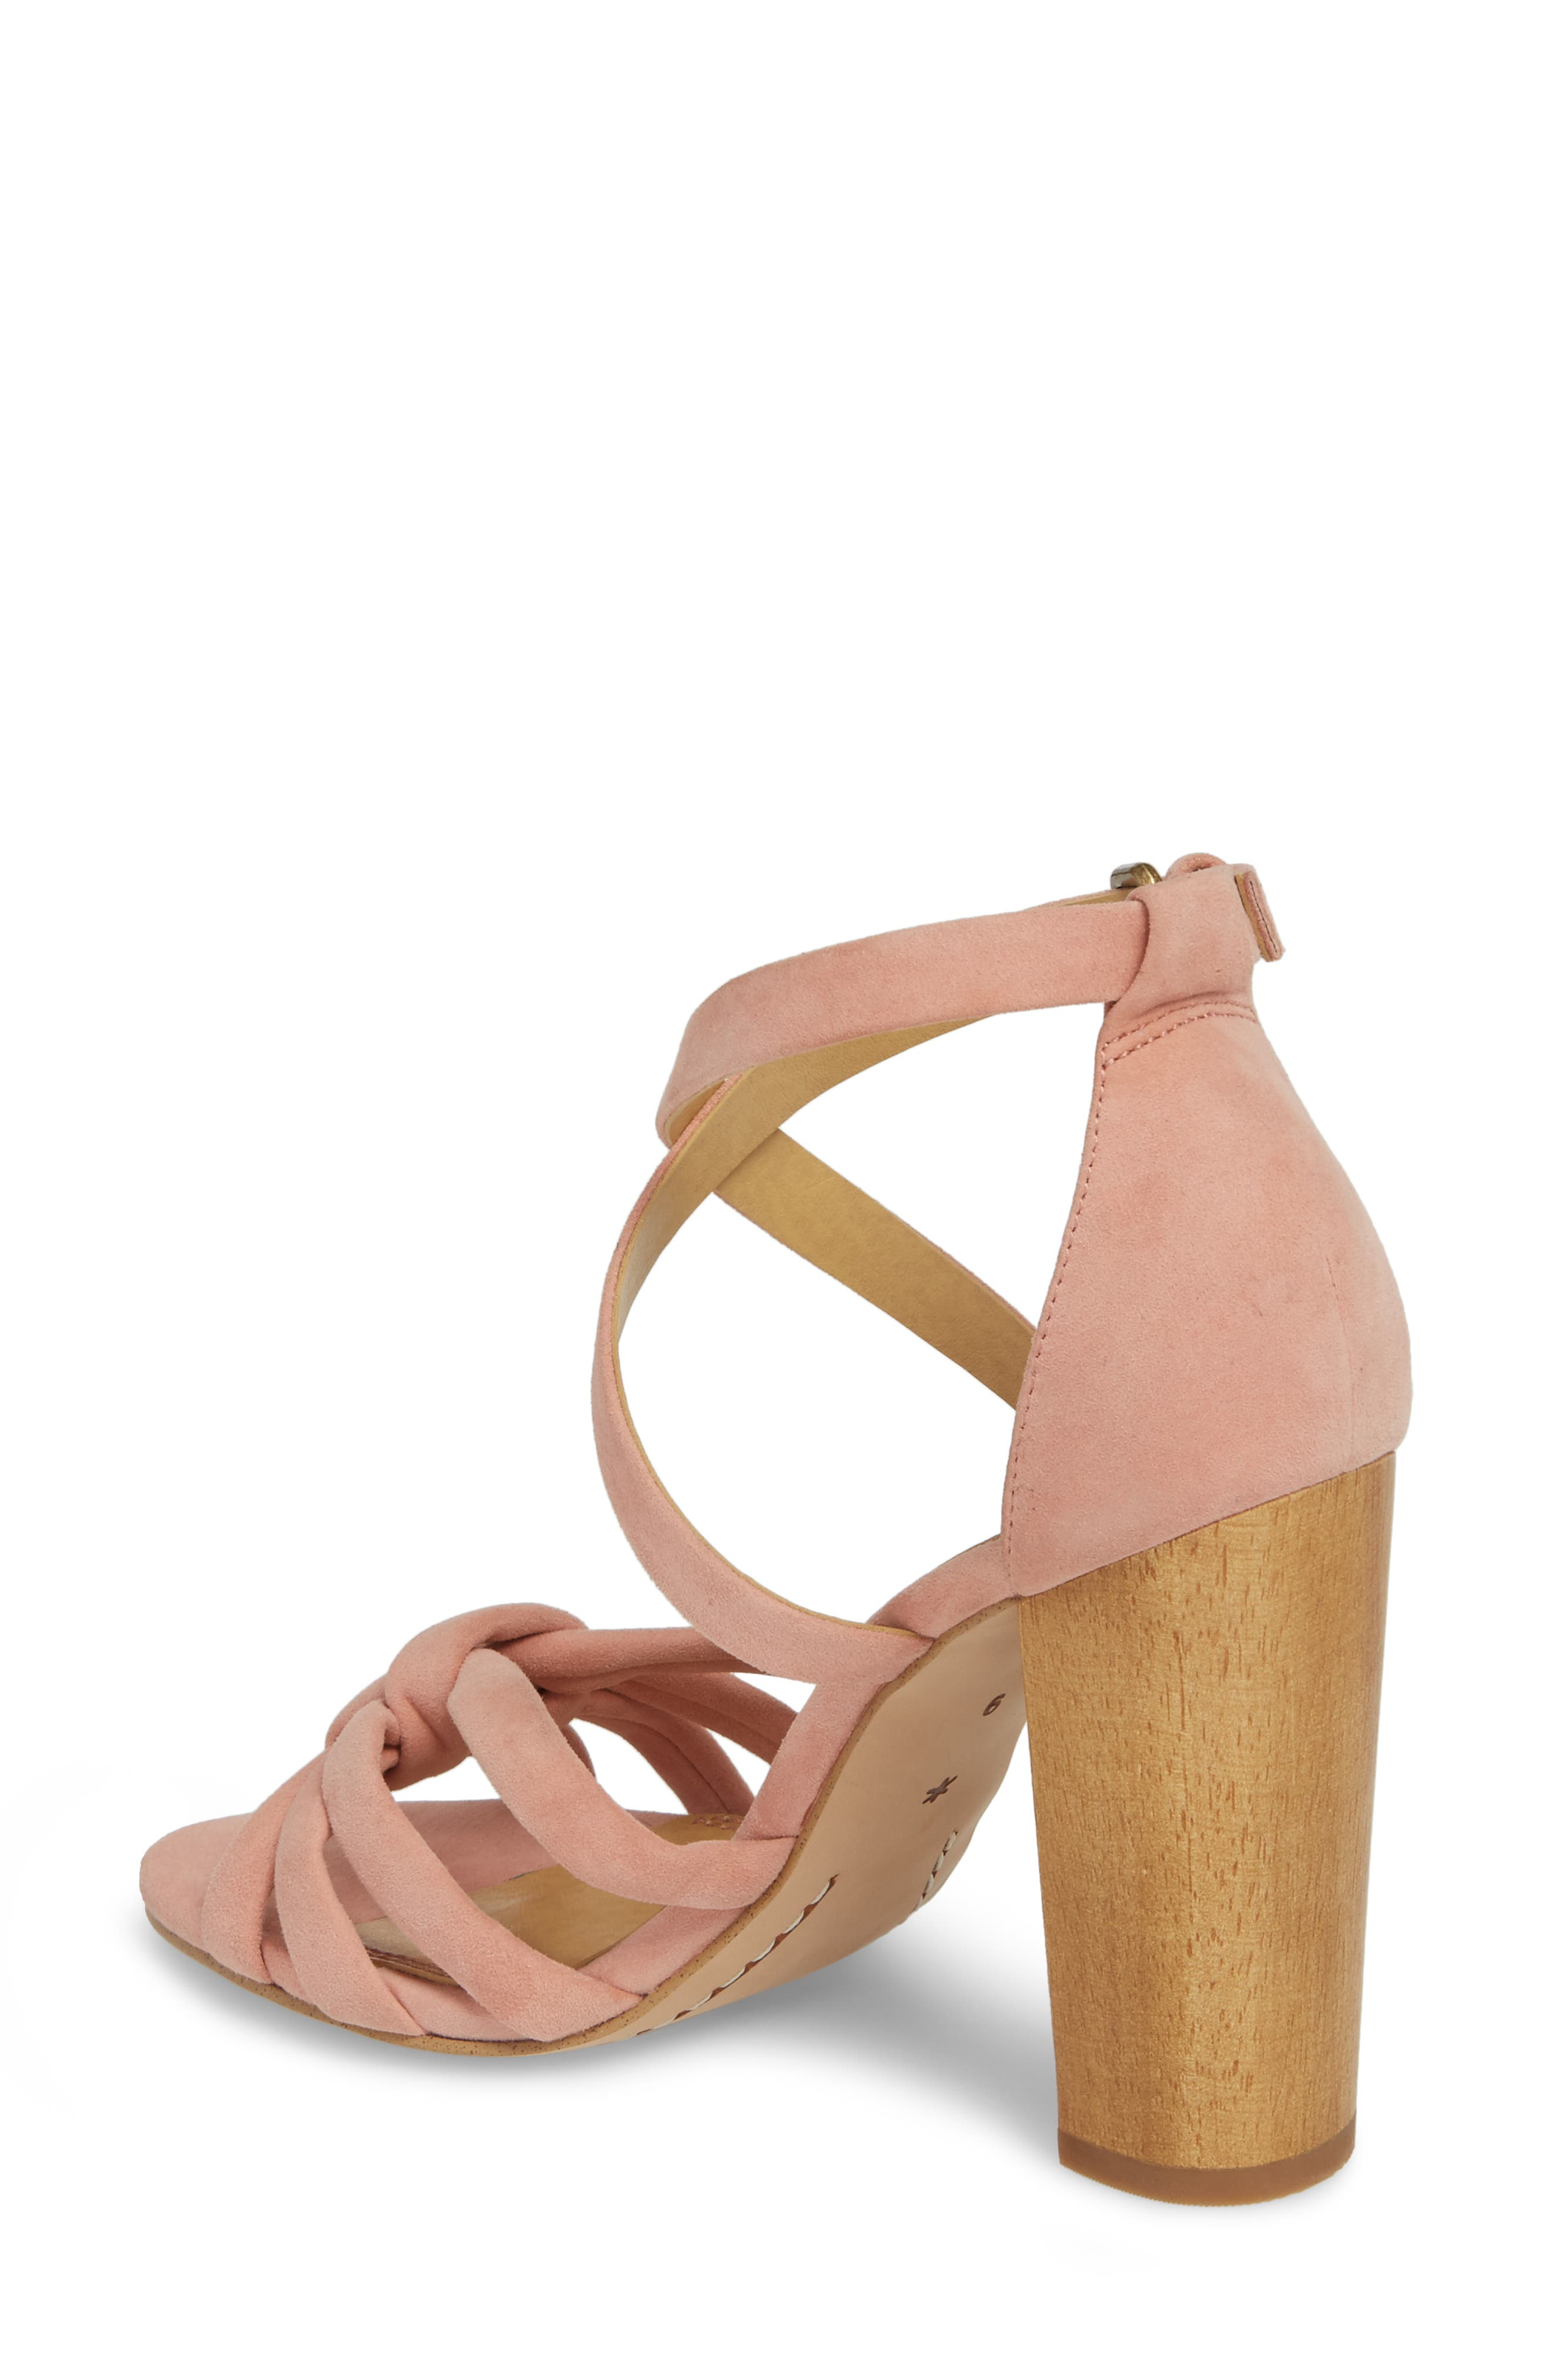 Faris Block Heel Sandal,                             Alternate thumbnail 2, color,                             Blush Suede